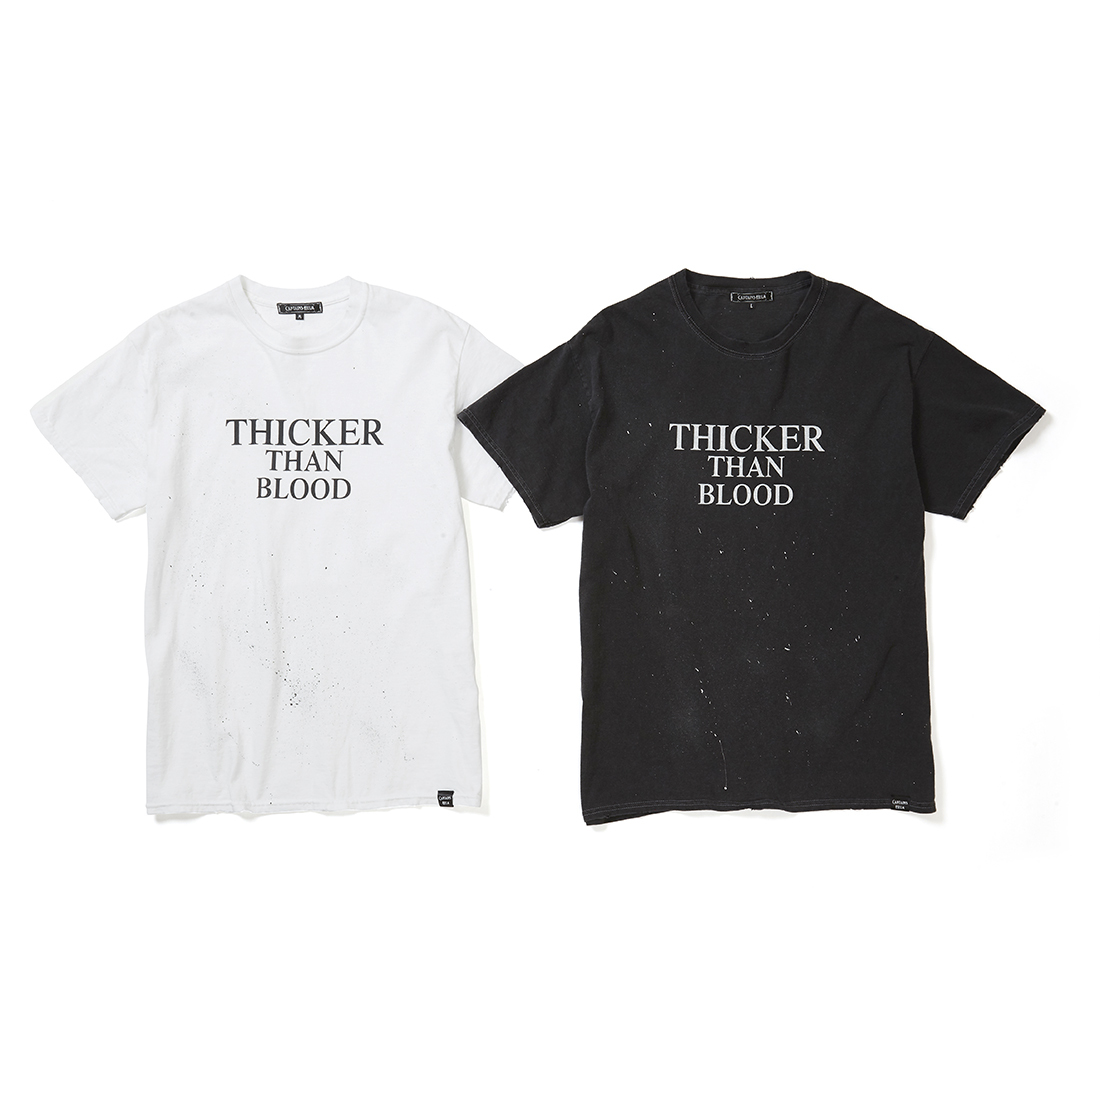 CAPTAINS HELM キャプテンズヘルム Pirates #THICKER THAN BLOOD TEE  Tシャツ 半袖